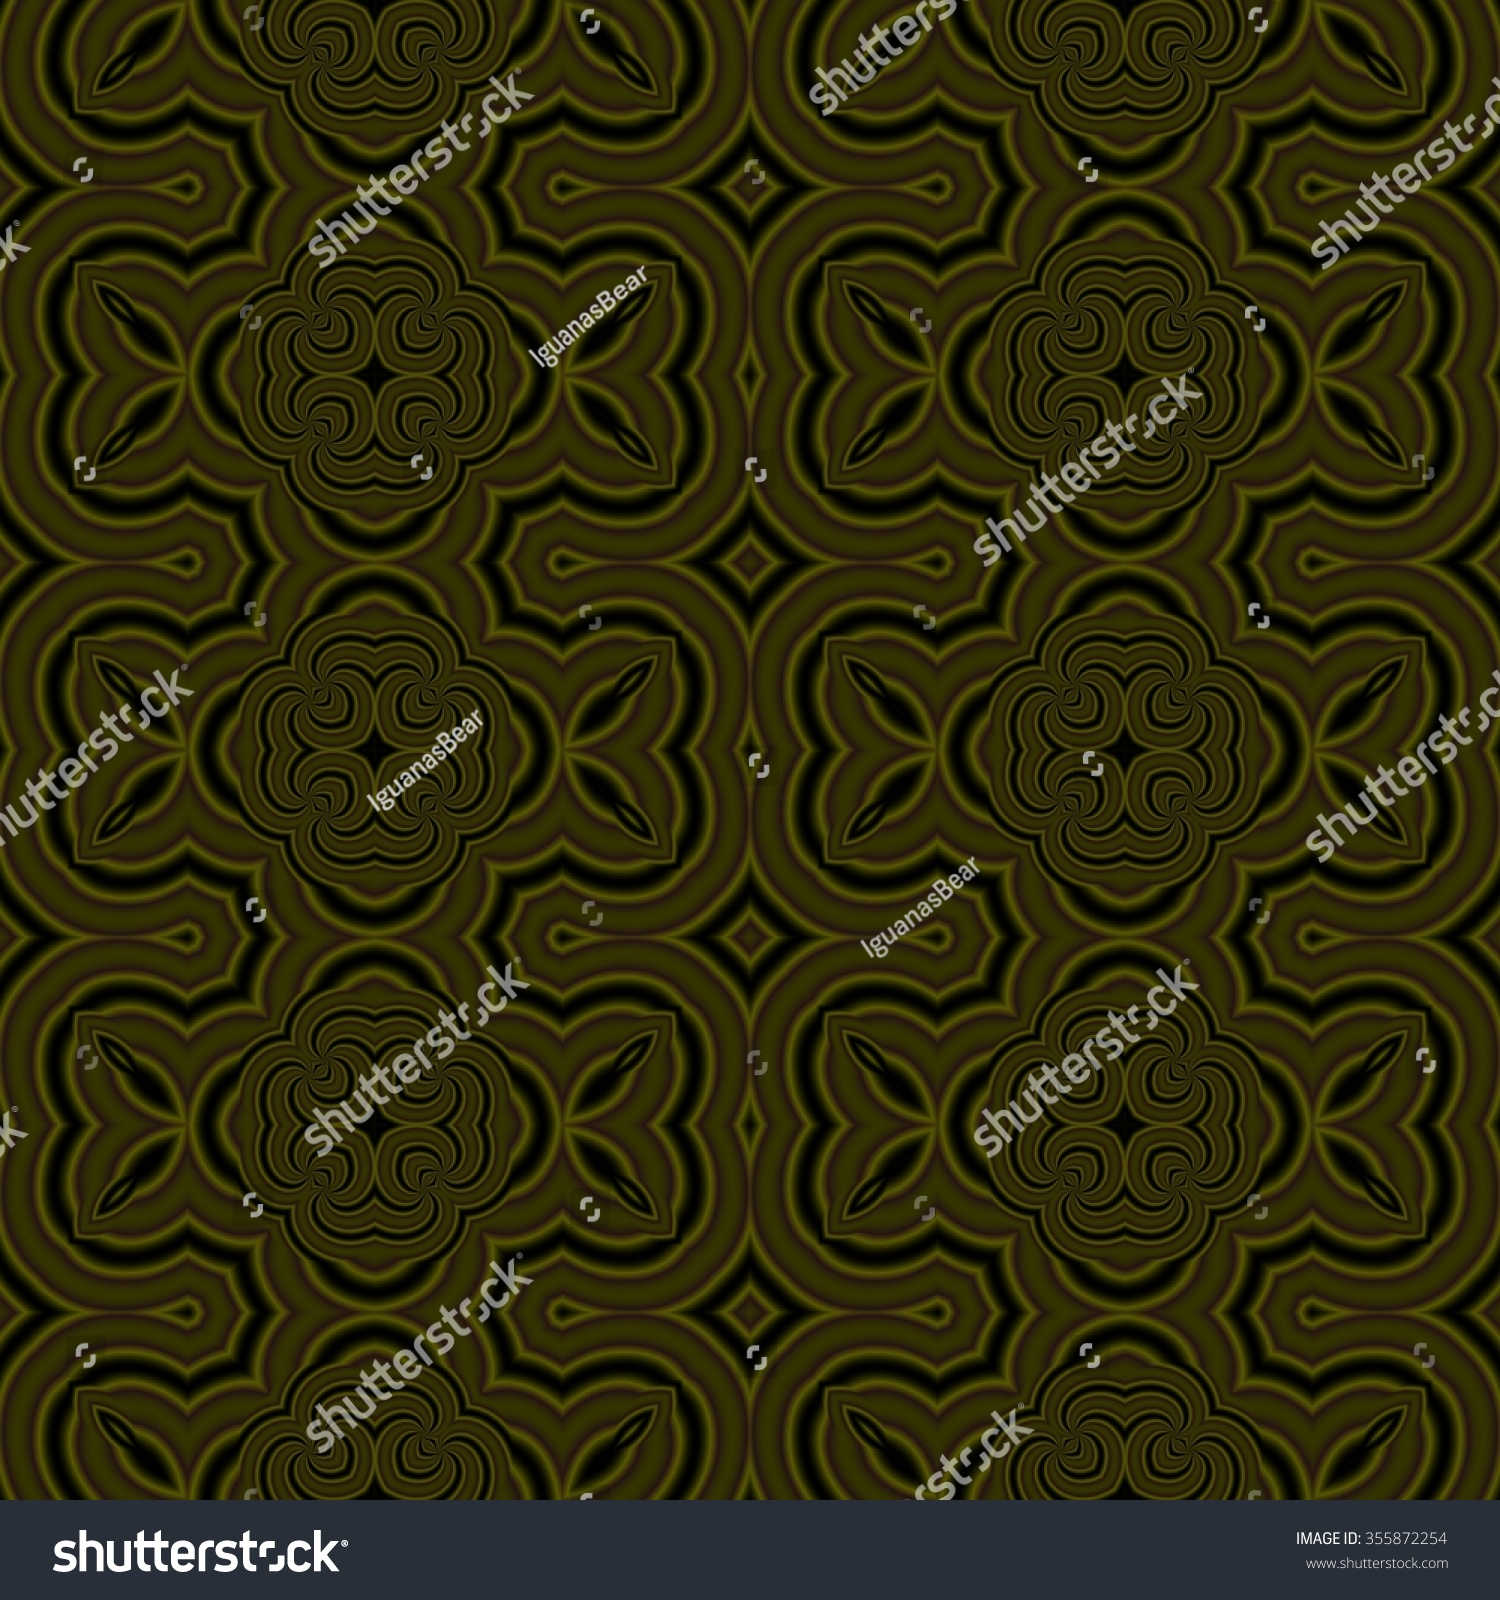 Abstract Geometric Kaleidoscopic Fractal Mirroring Tile Able Pattern